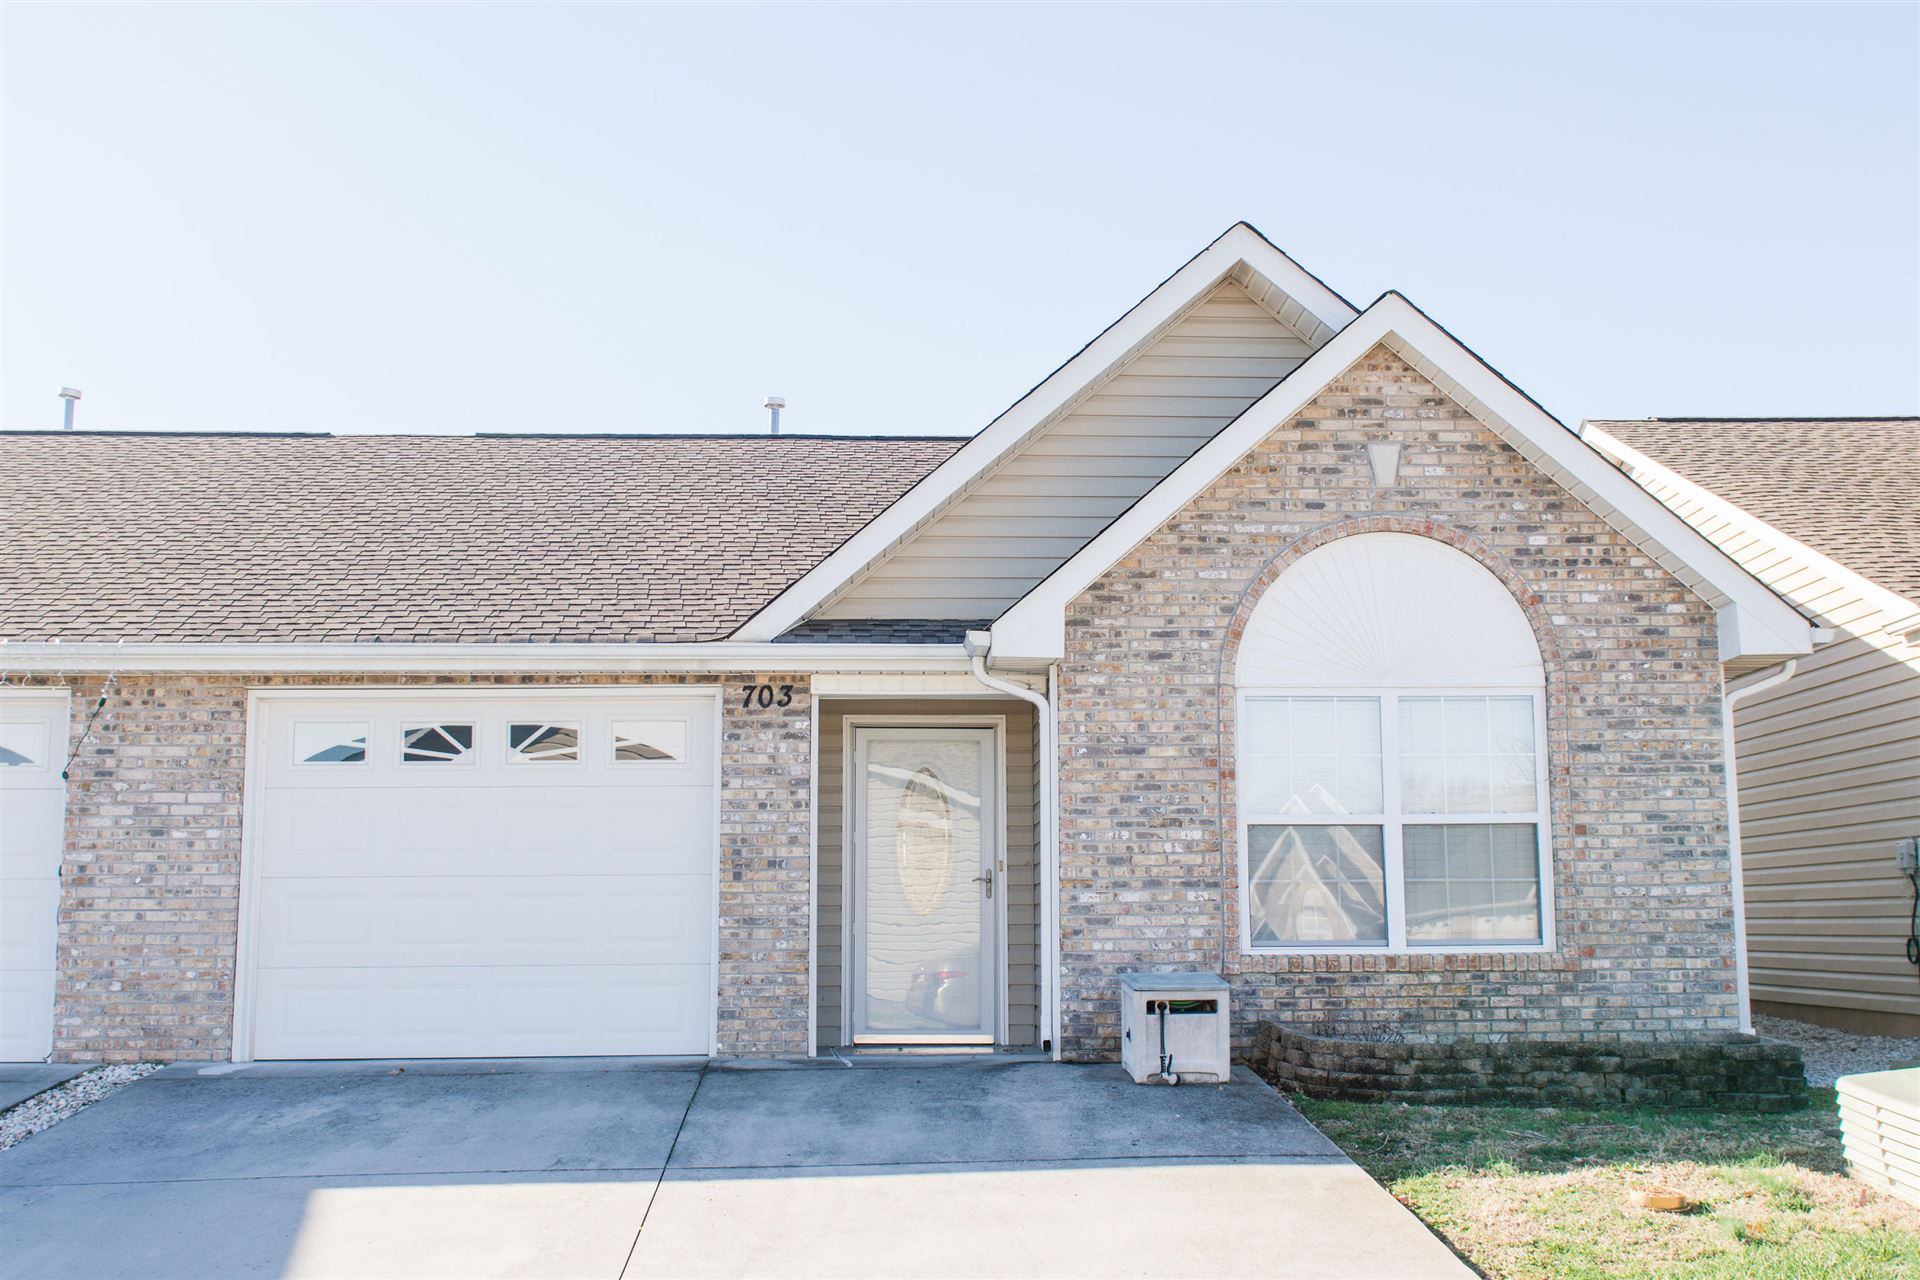 Photo of 703 High Point Way, Knoxville, TN 37912 (MLS # 1104527)